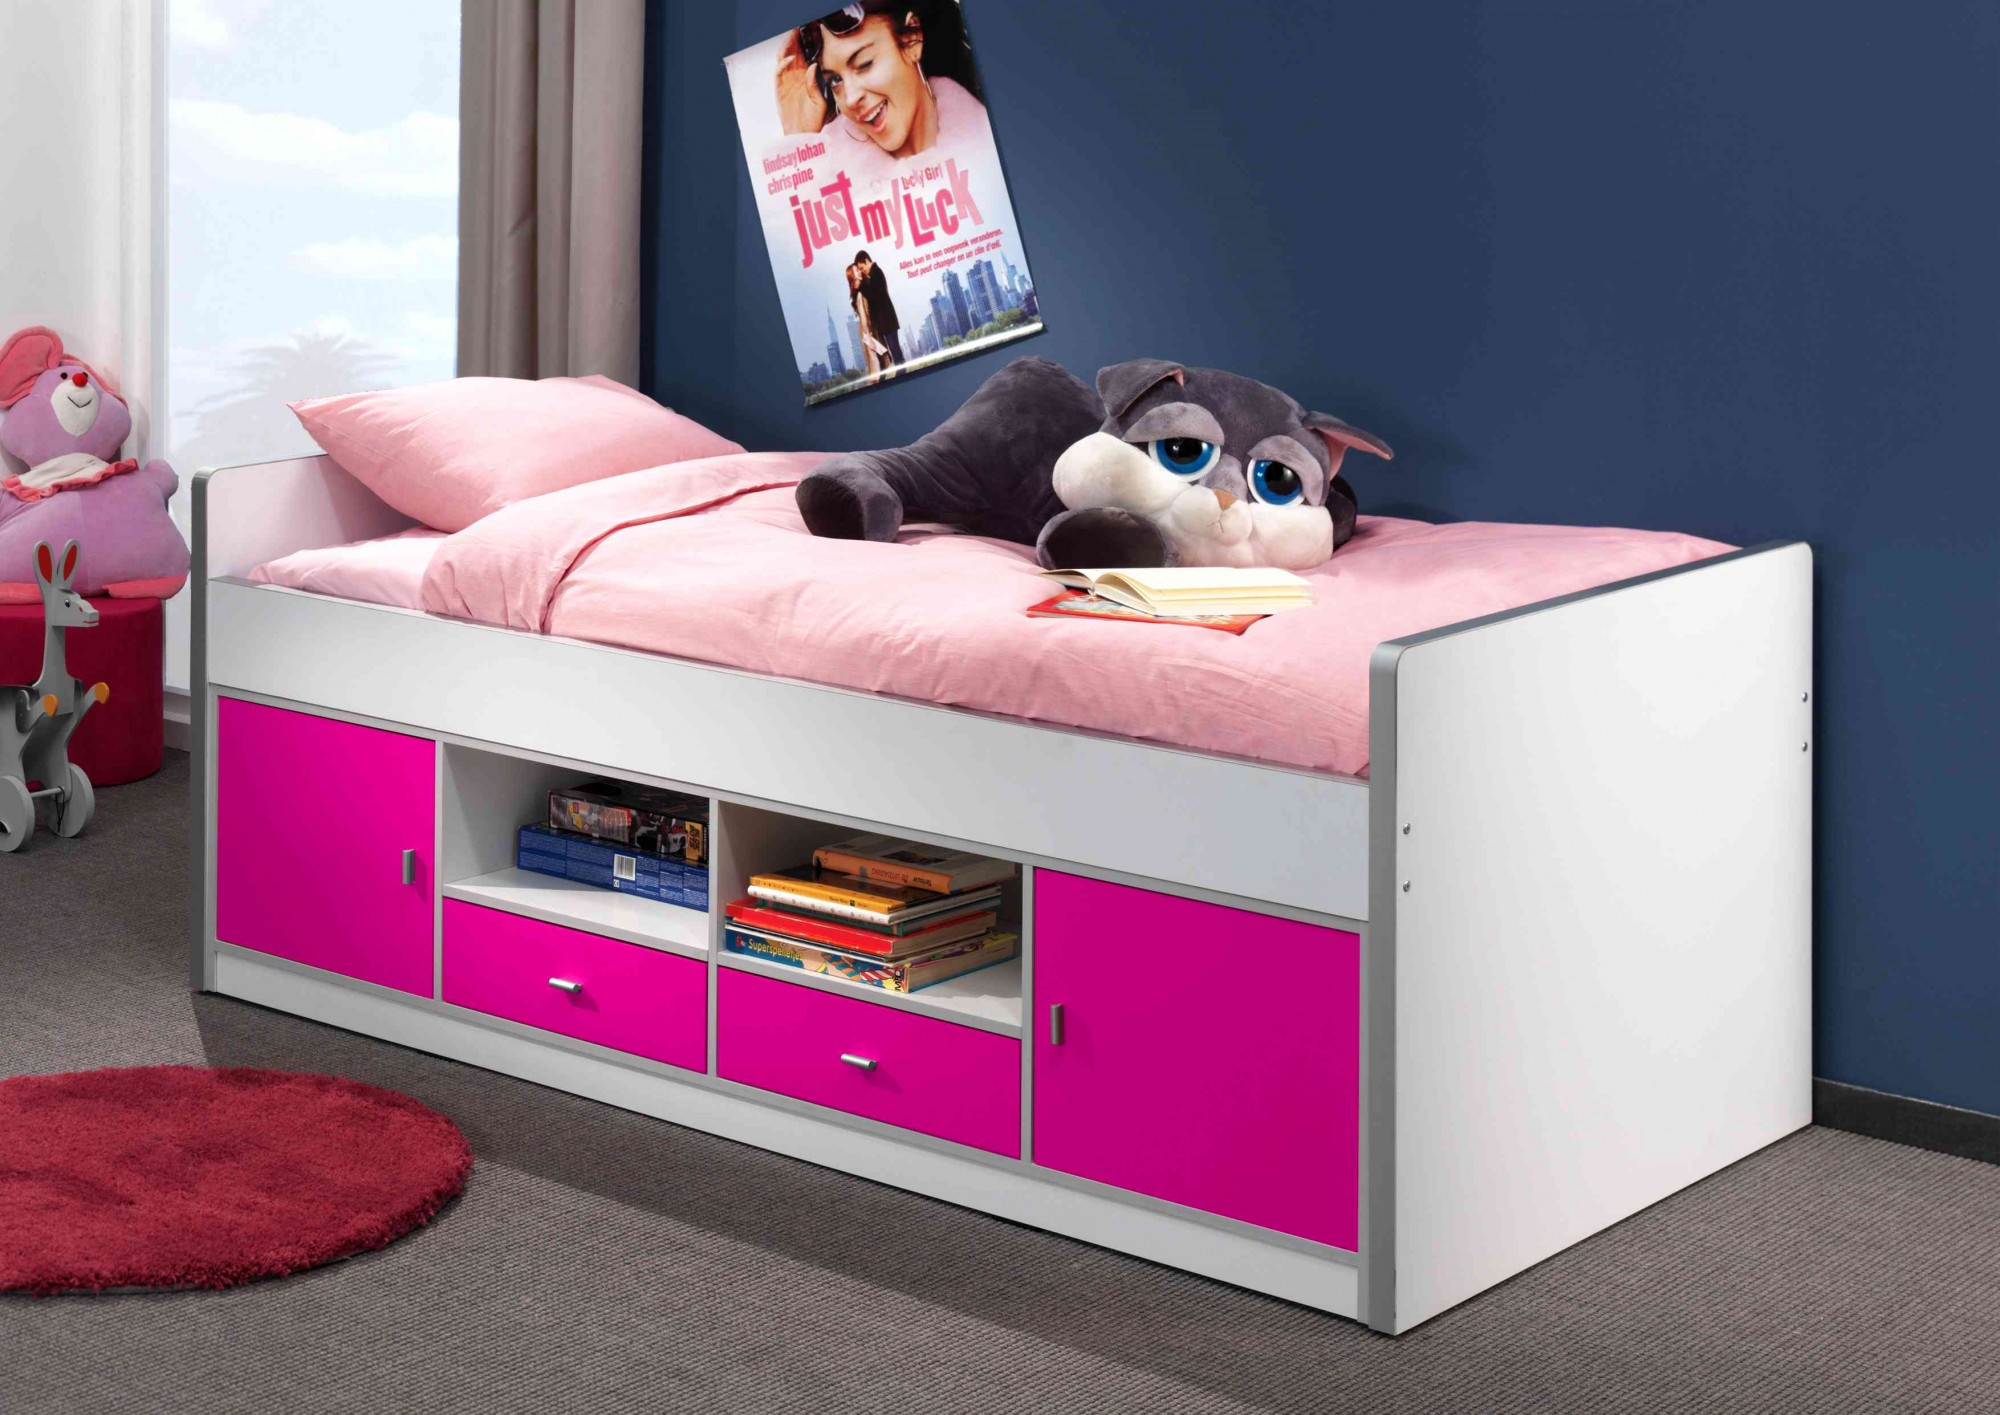 kojenbett bonny liegefl che 90 x 200 cm wei fuchsia kinder jugendzimmer funktionsbetten. Black Bedroom Furniture Sets. Home Design Ideas